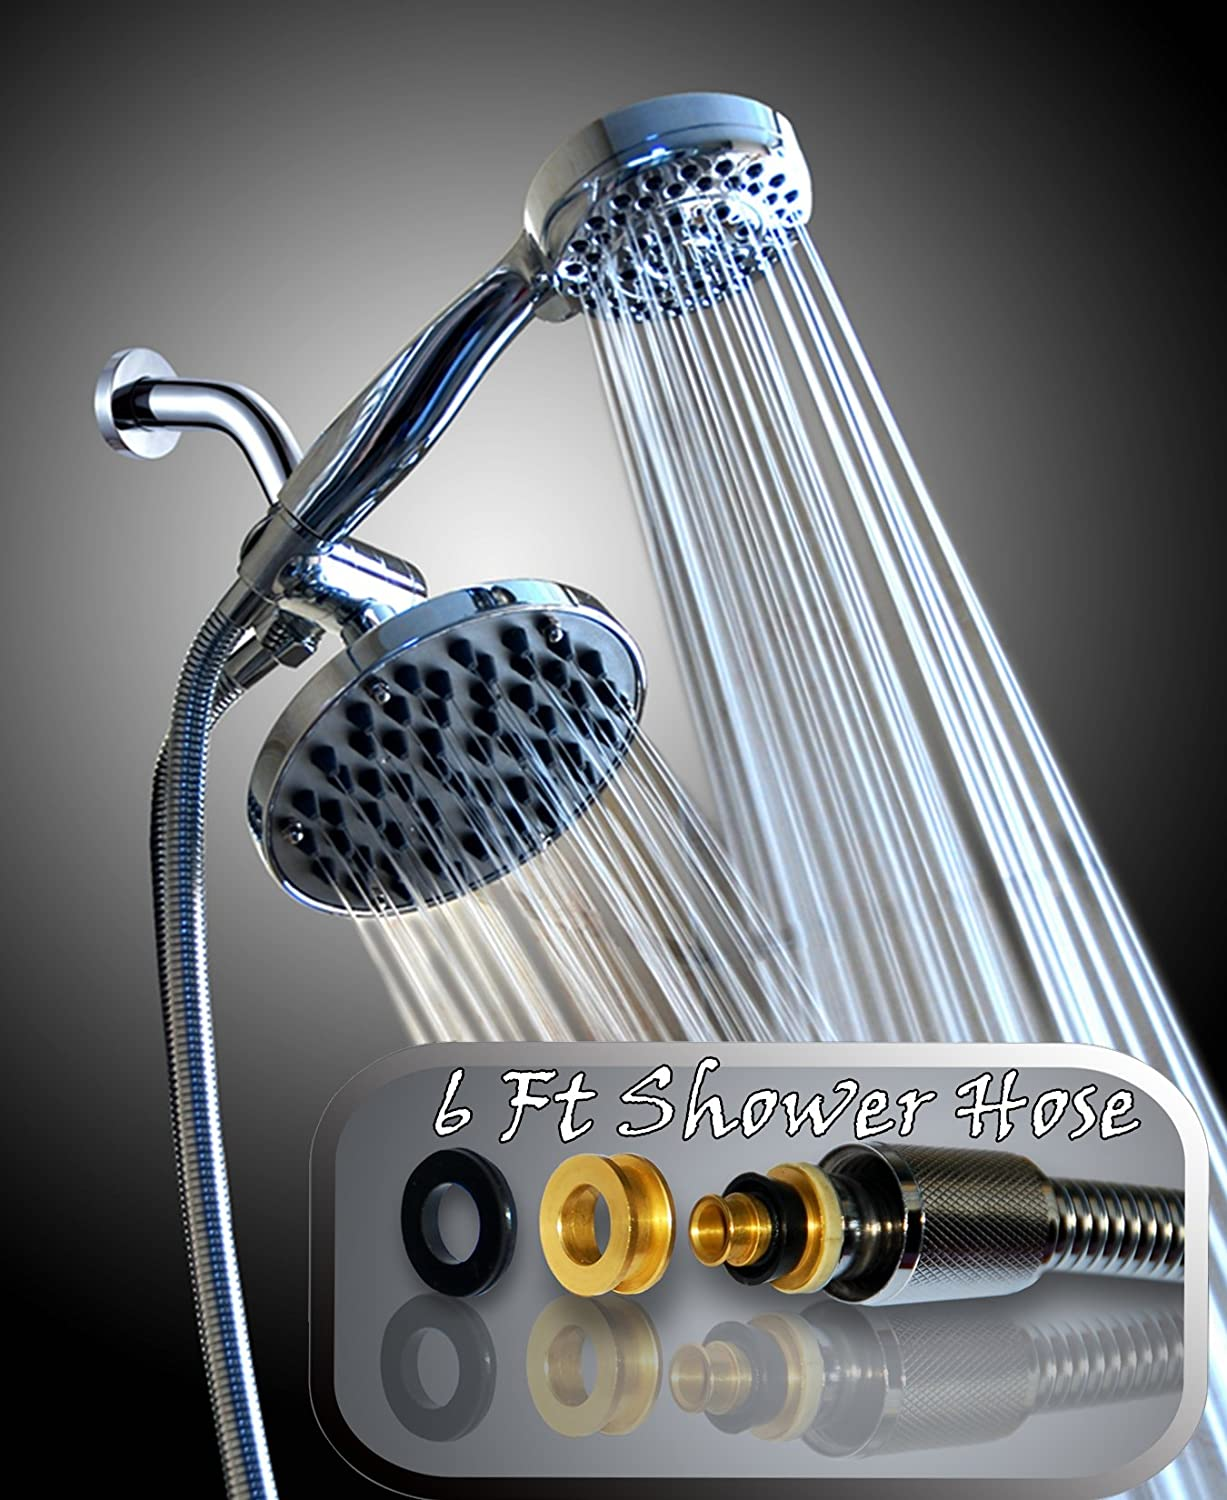 WantBa High Pressure Shower Head Combo with 6 Feet Stainless Steel ...